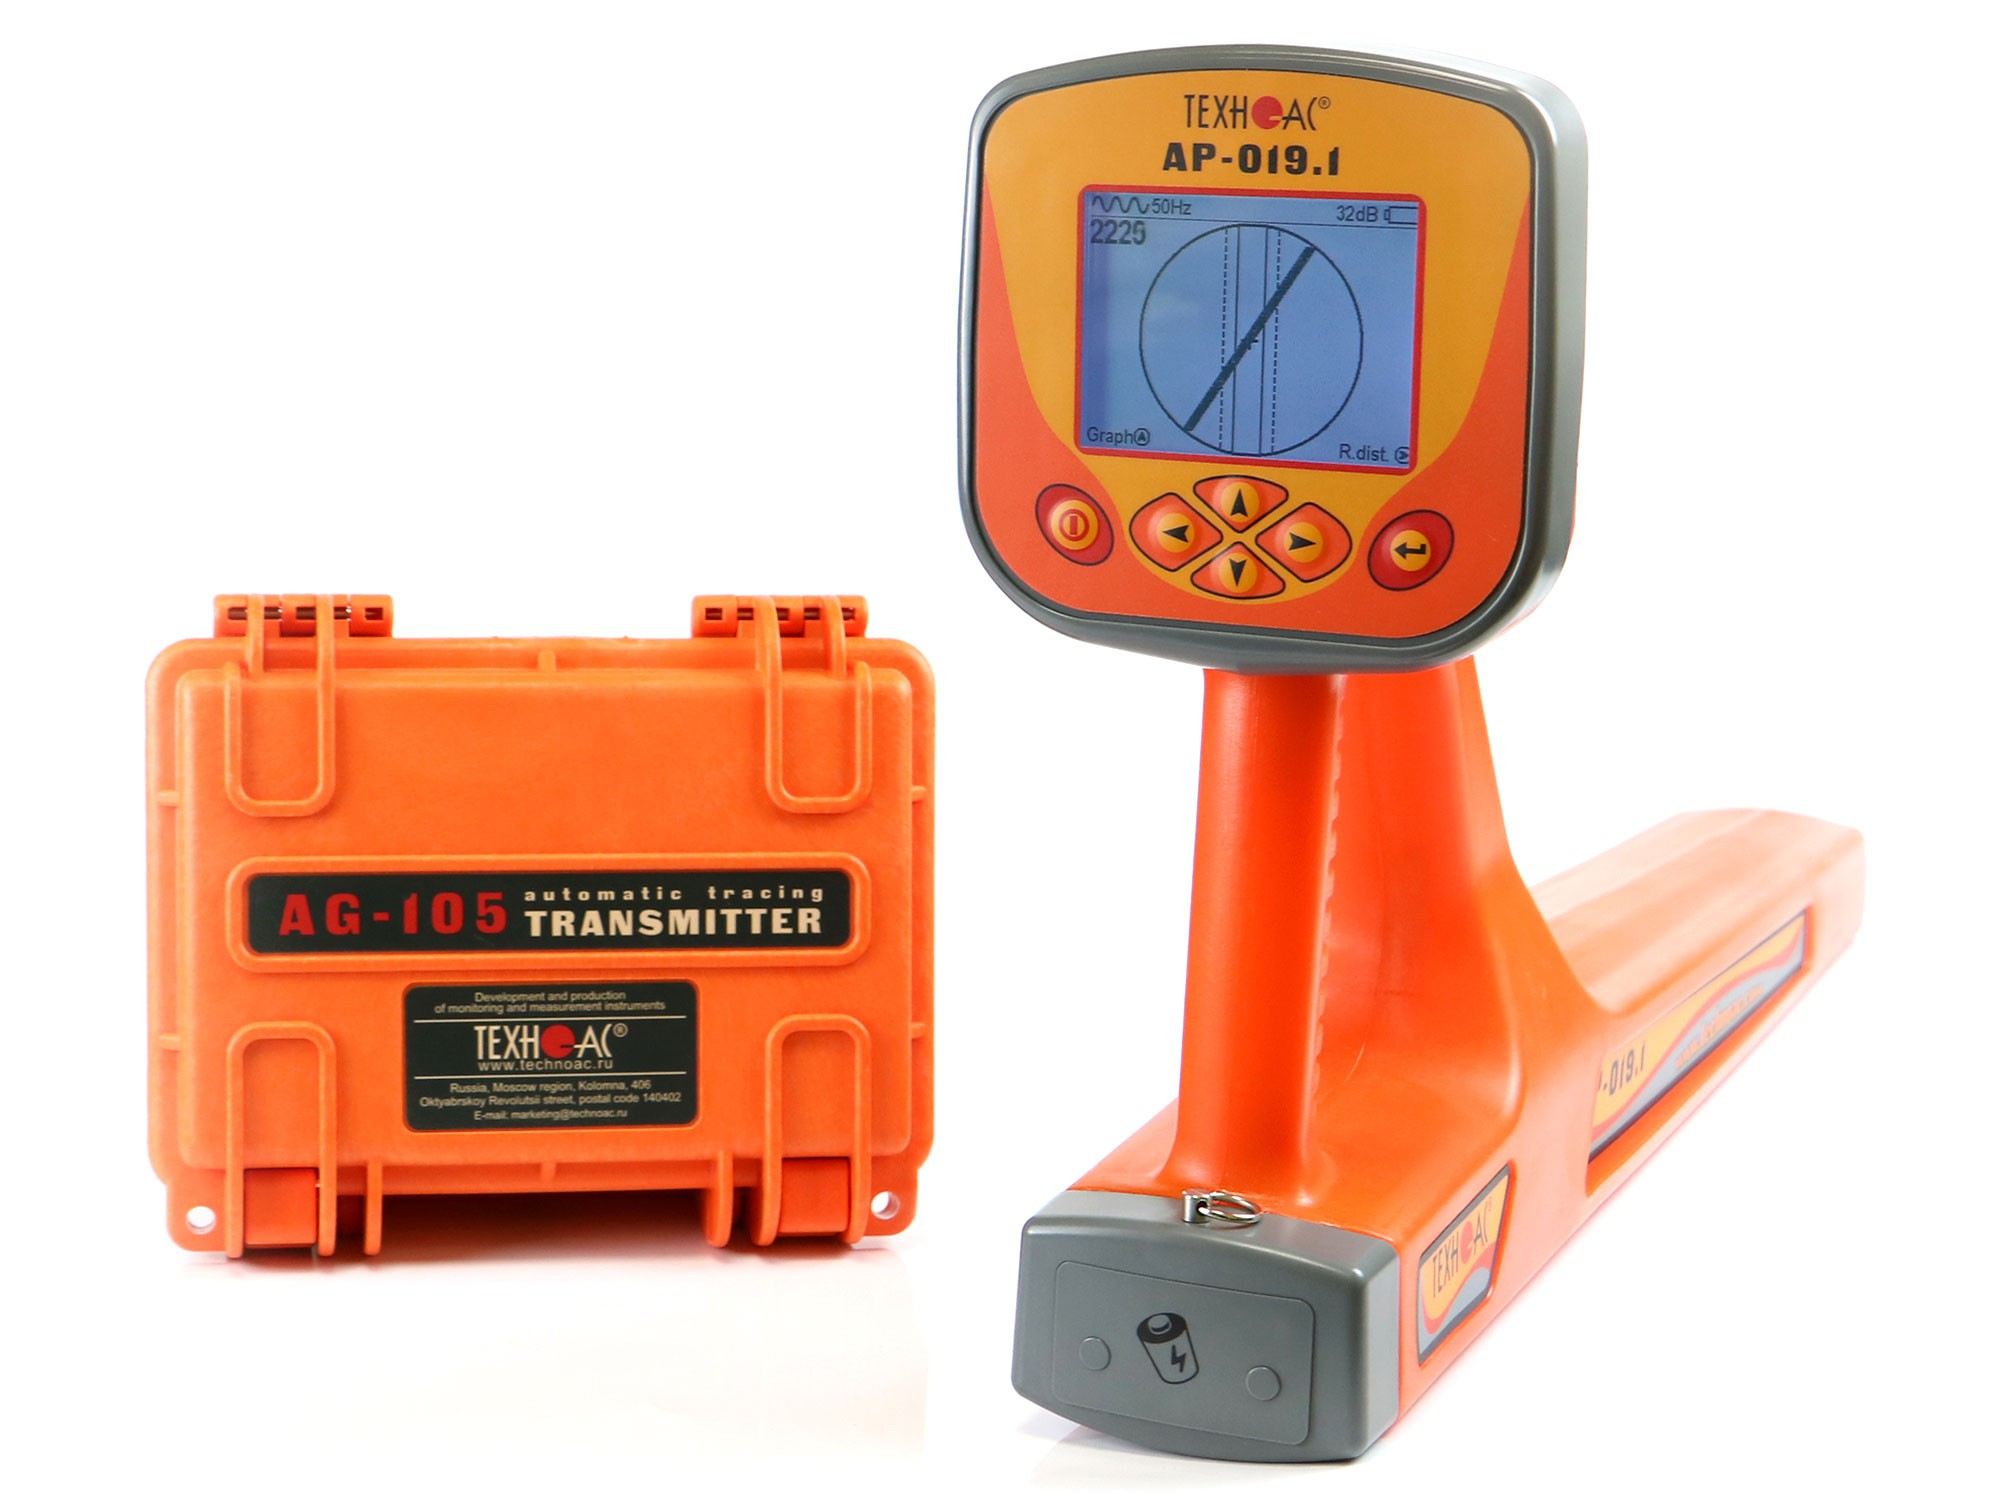 Cable location and depth measurement with AG-309.15N